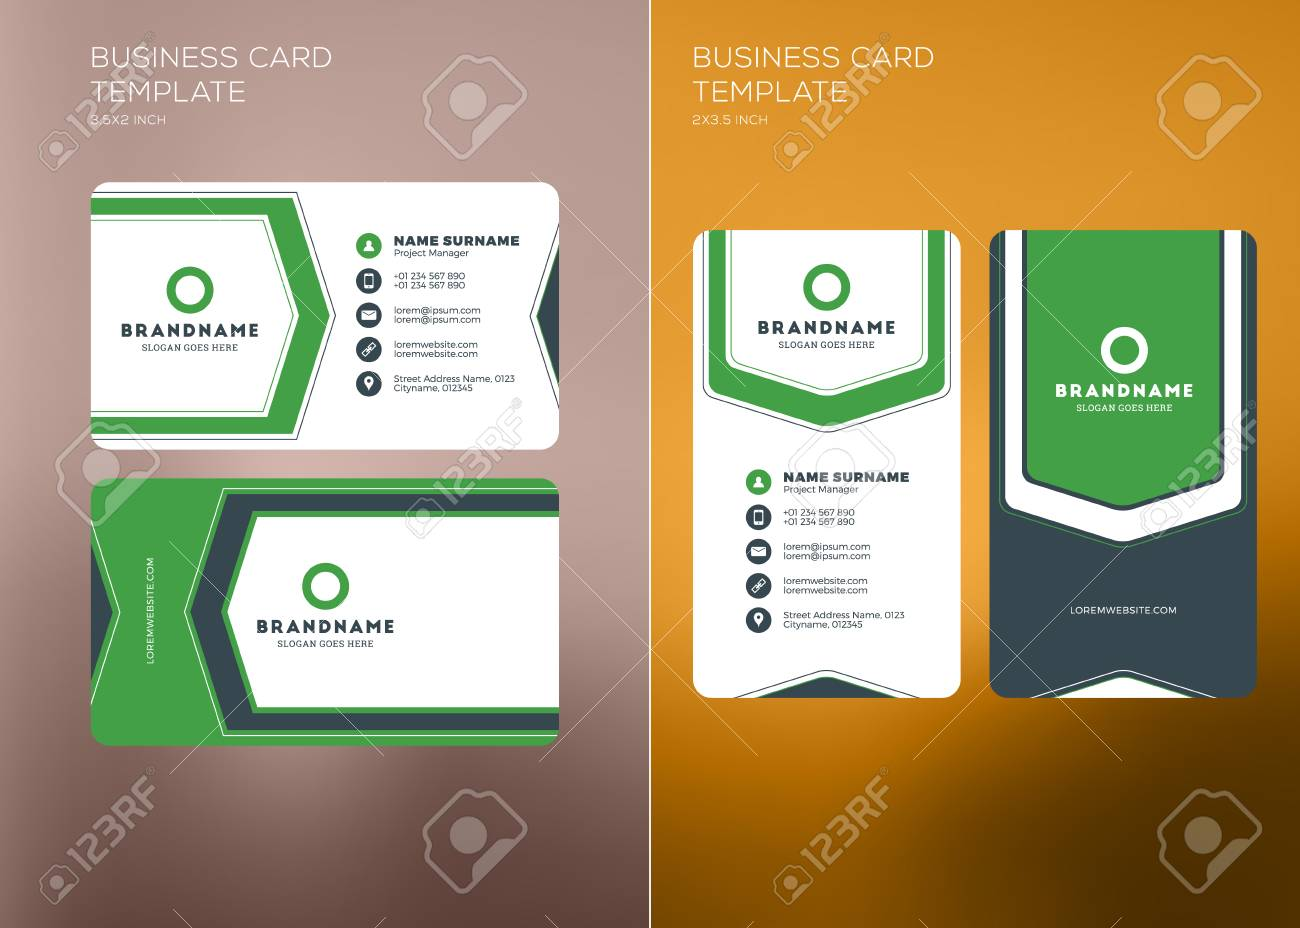 Corporate business card print template personal visiting card corporate business card print template personal visiting card with company logo vertical and horizontal fbccfo Choice Image